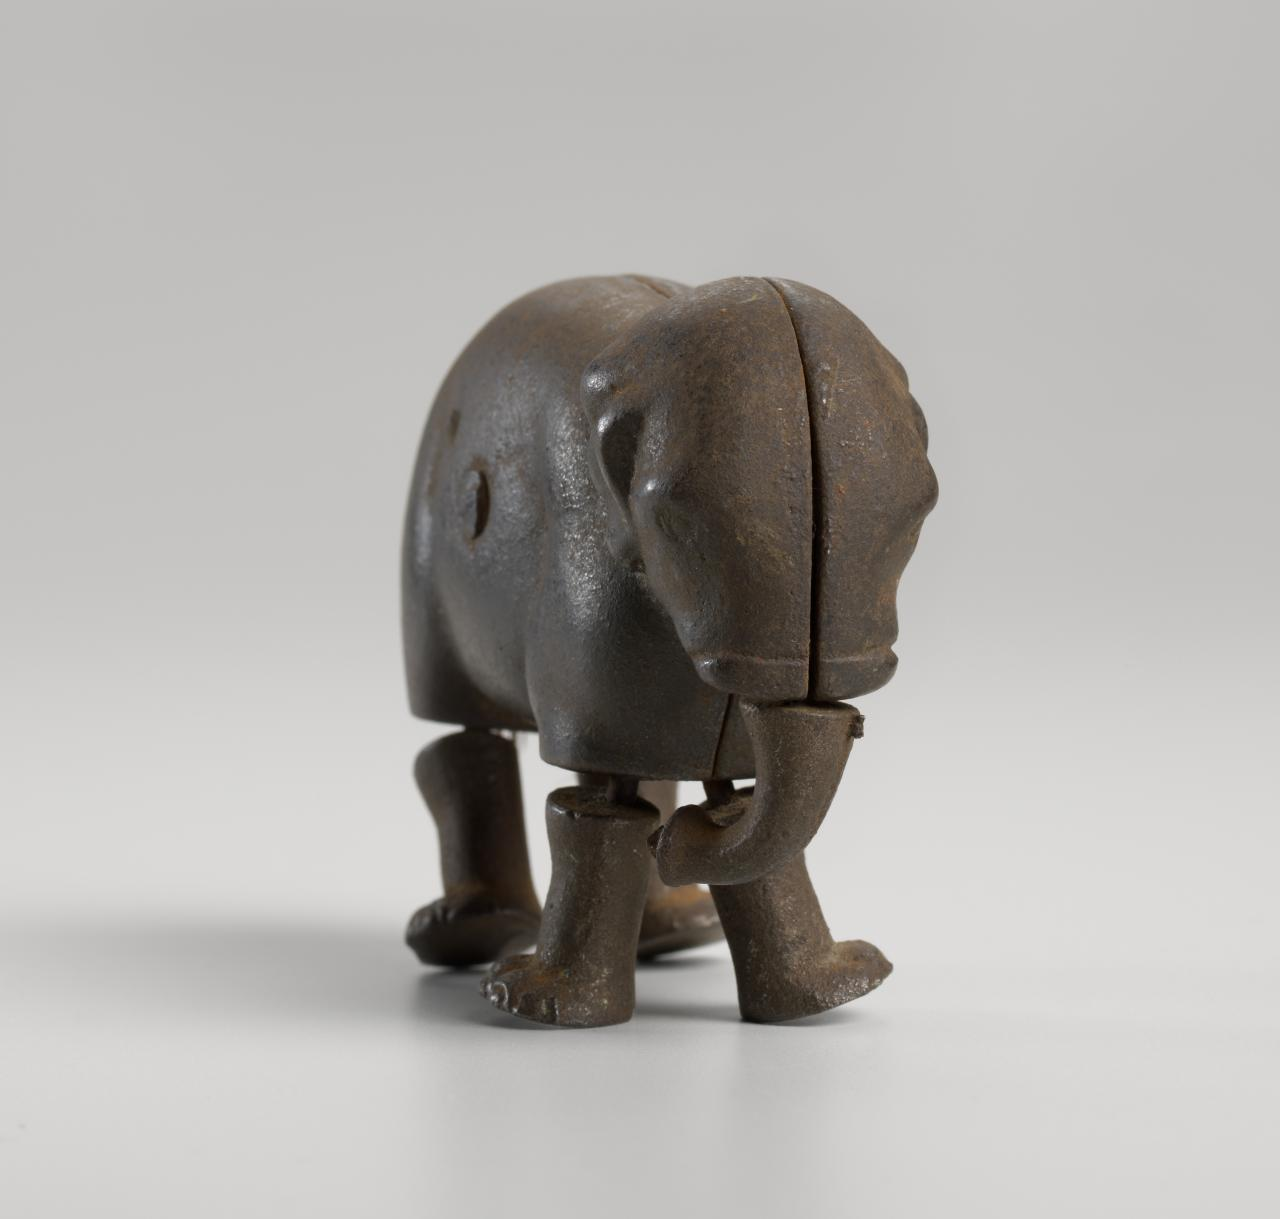 IVES AND BLAKESLEE & CO., Bridgeport, Connecticut (manufacturer) Toy elephant (1873-1890s)